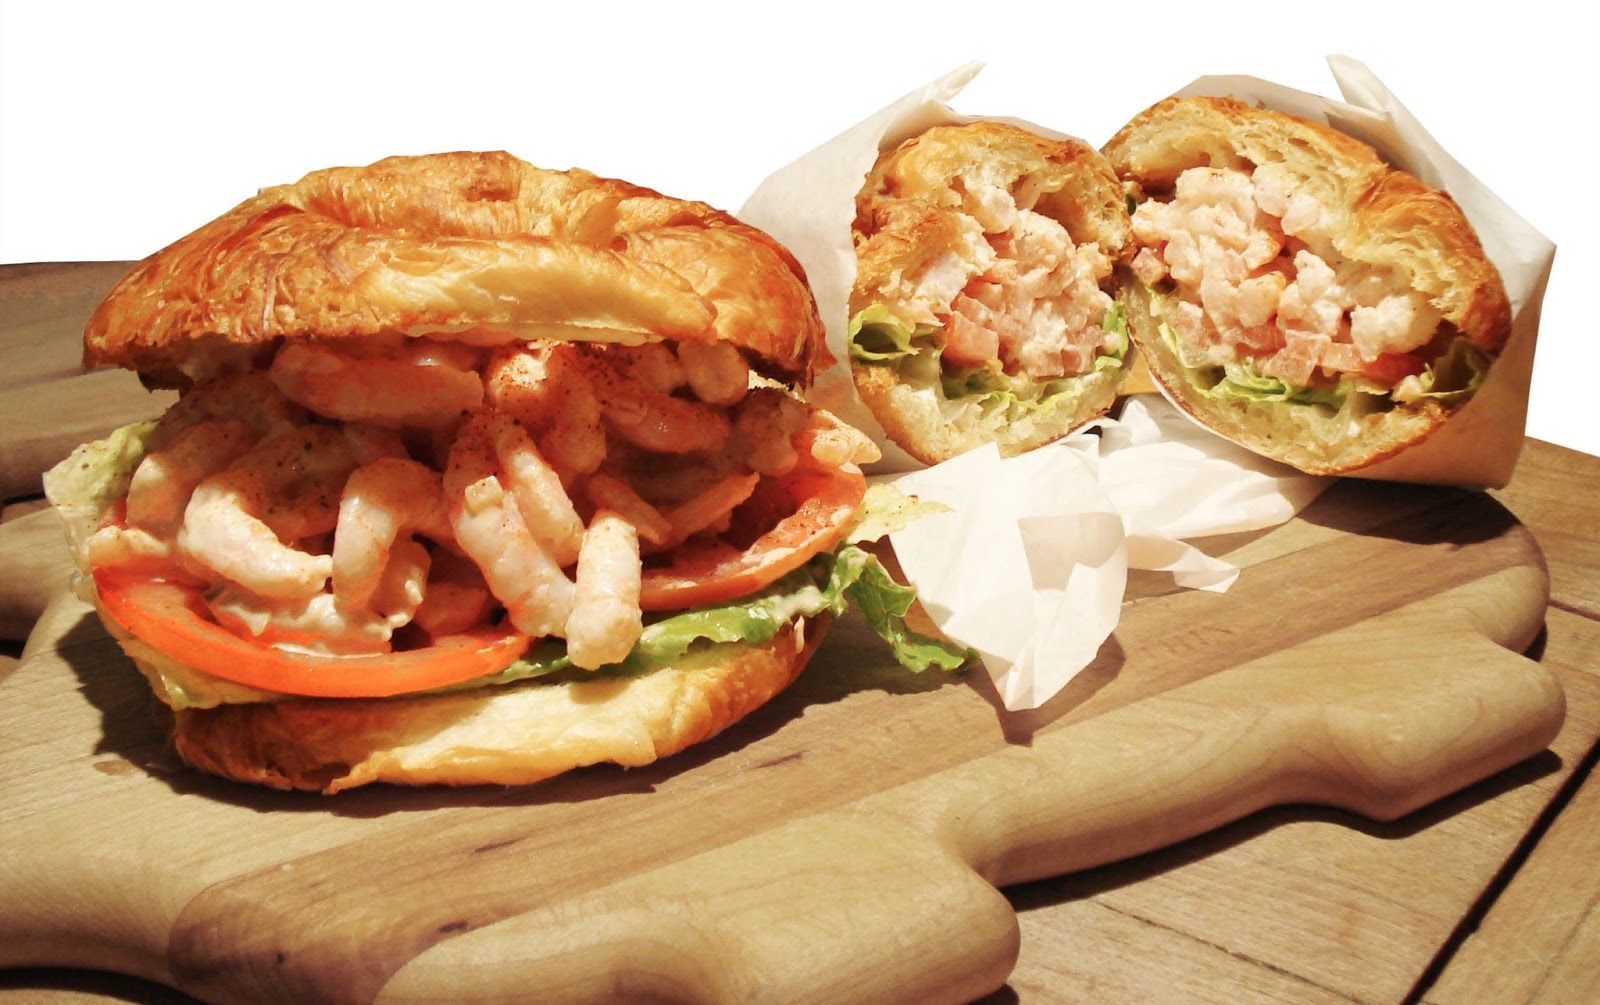 Spice Up Lunch Quick Shrimp Salad Croissant Sandwich Better Housekeeper